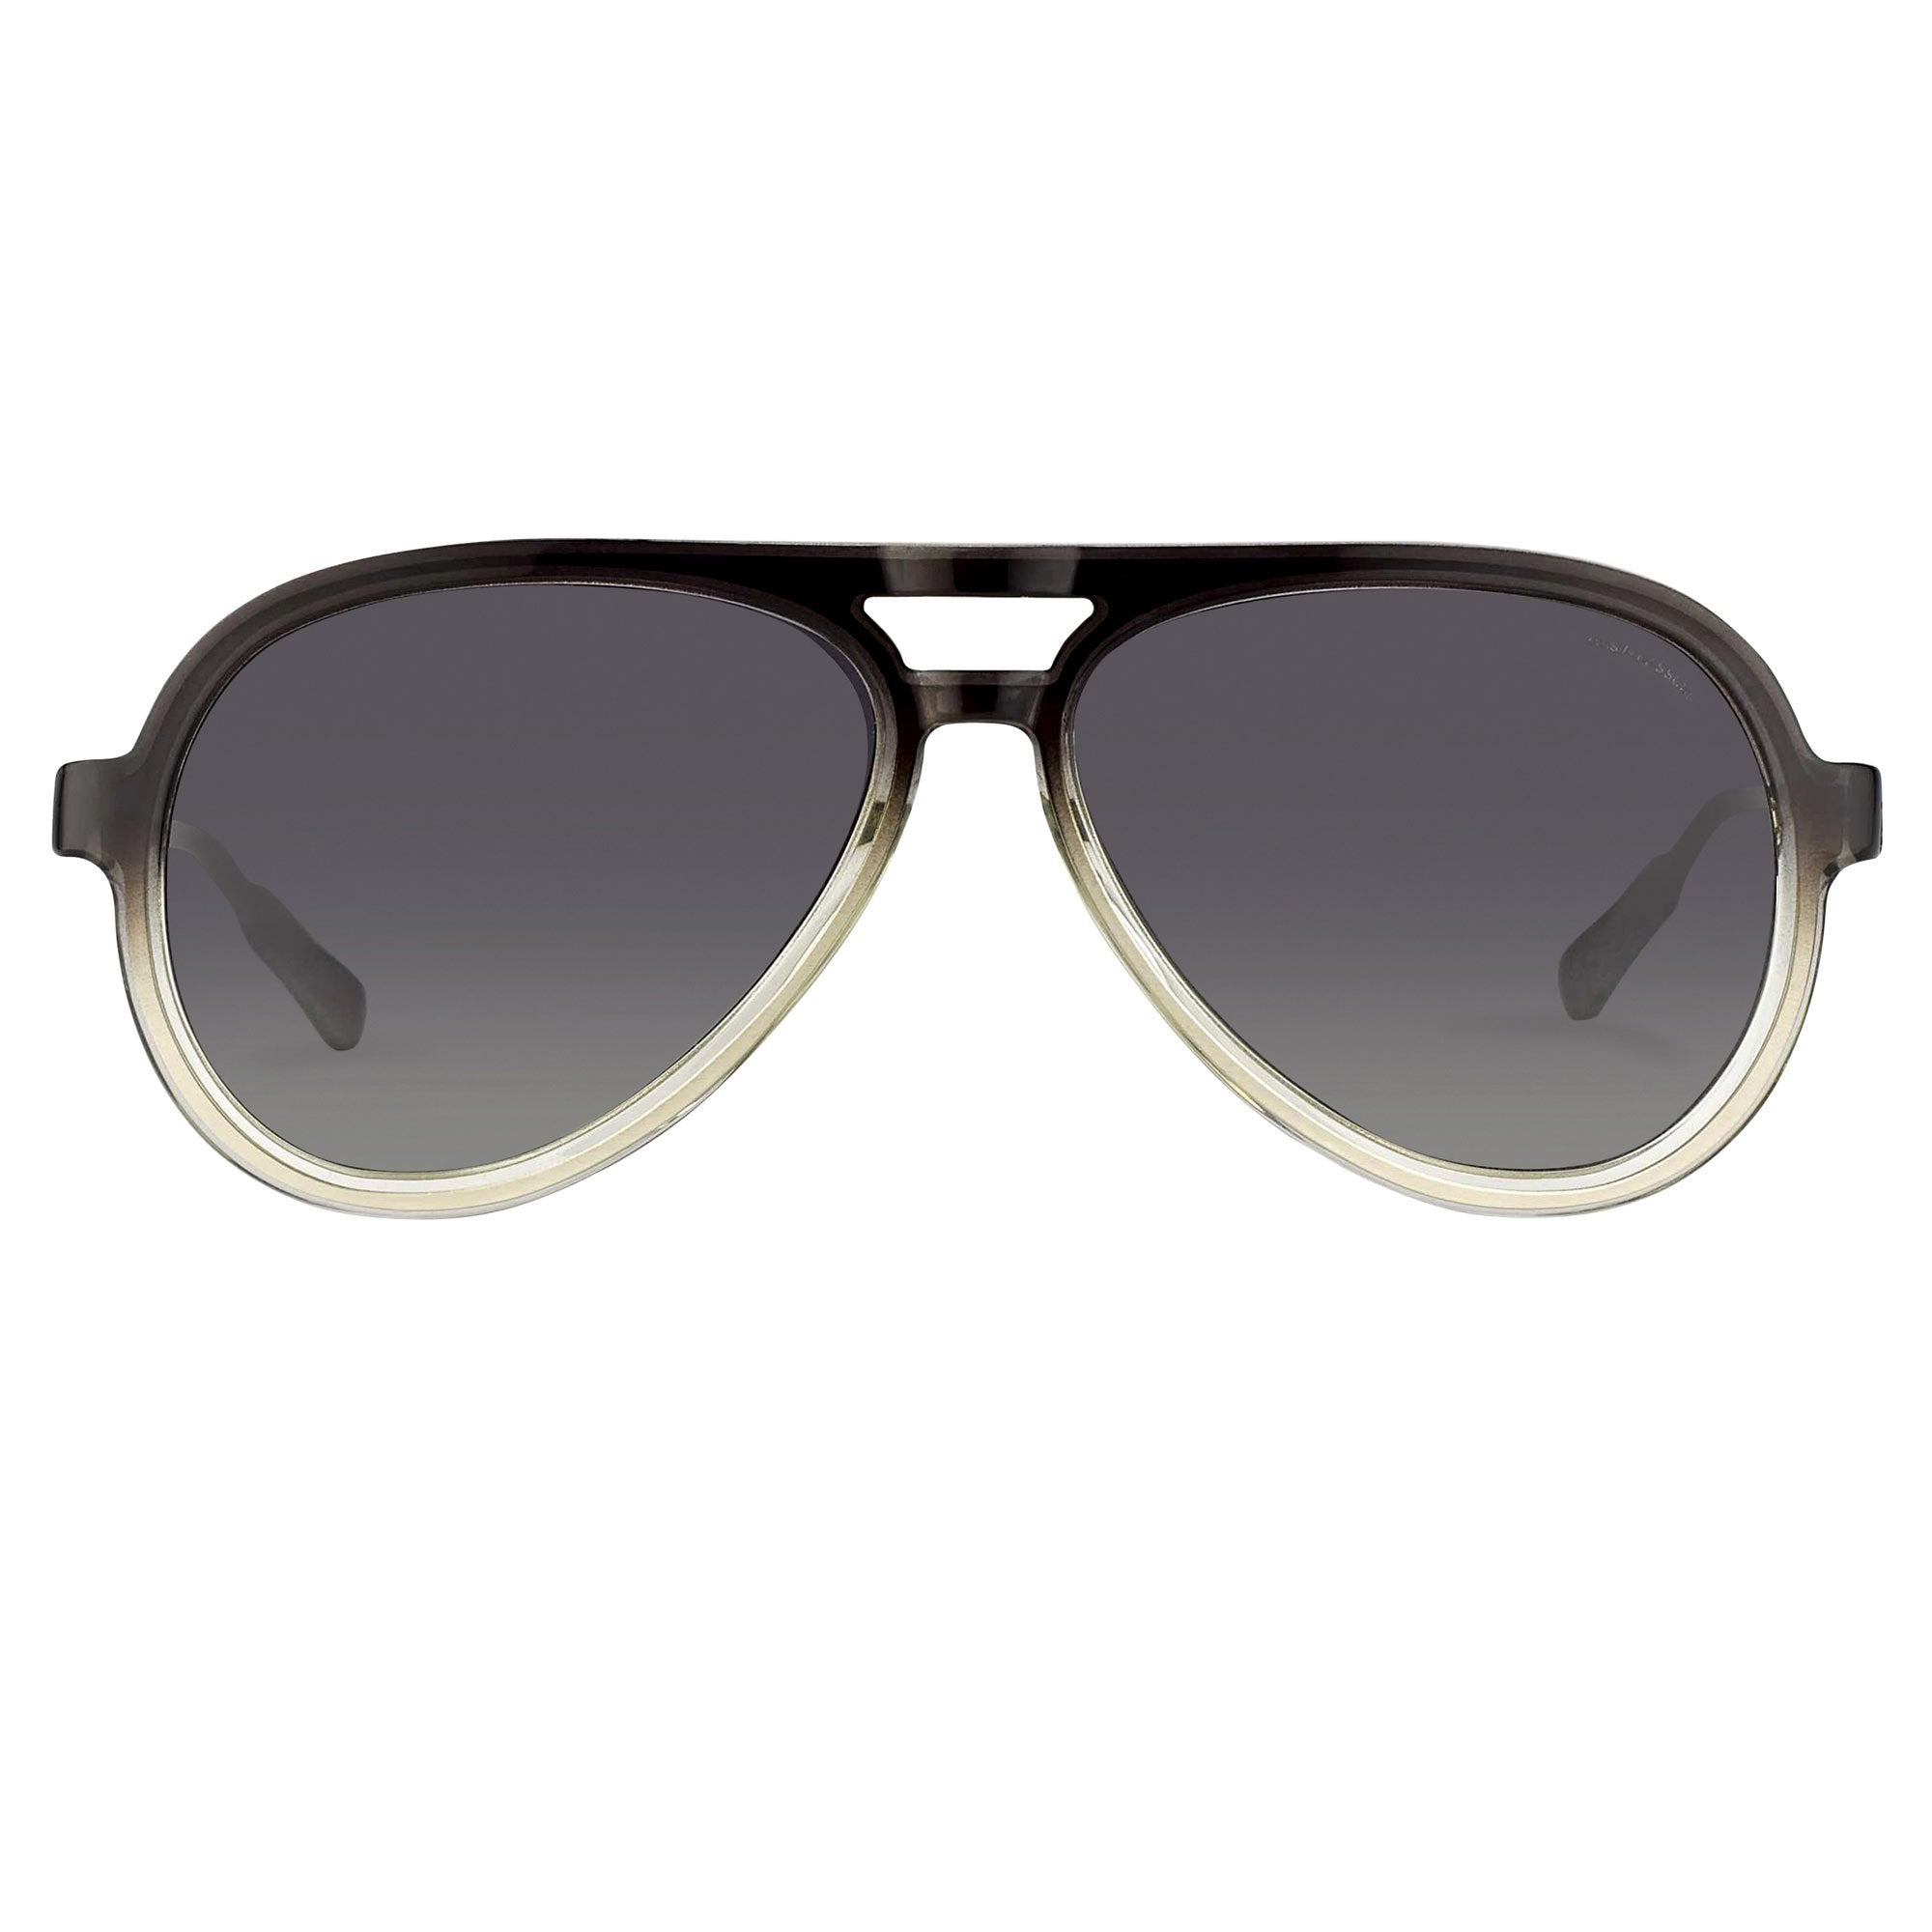 Kris Van Assche Sunglasses Titanium Dark Grey Clear With Purple Graduated Lenses - KVA78C1SUN - Watches & Crystals